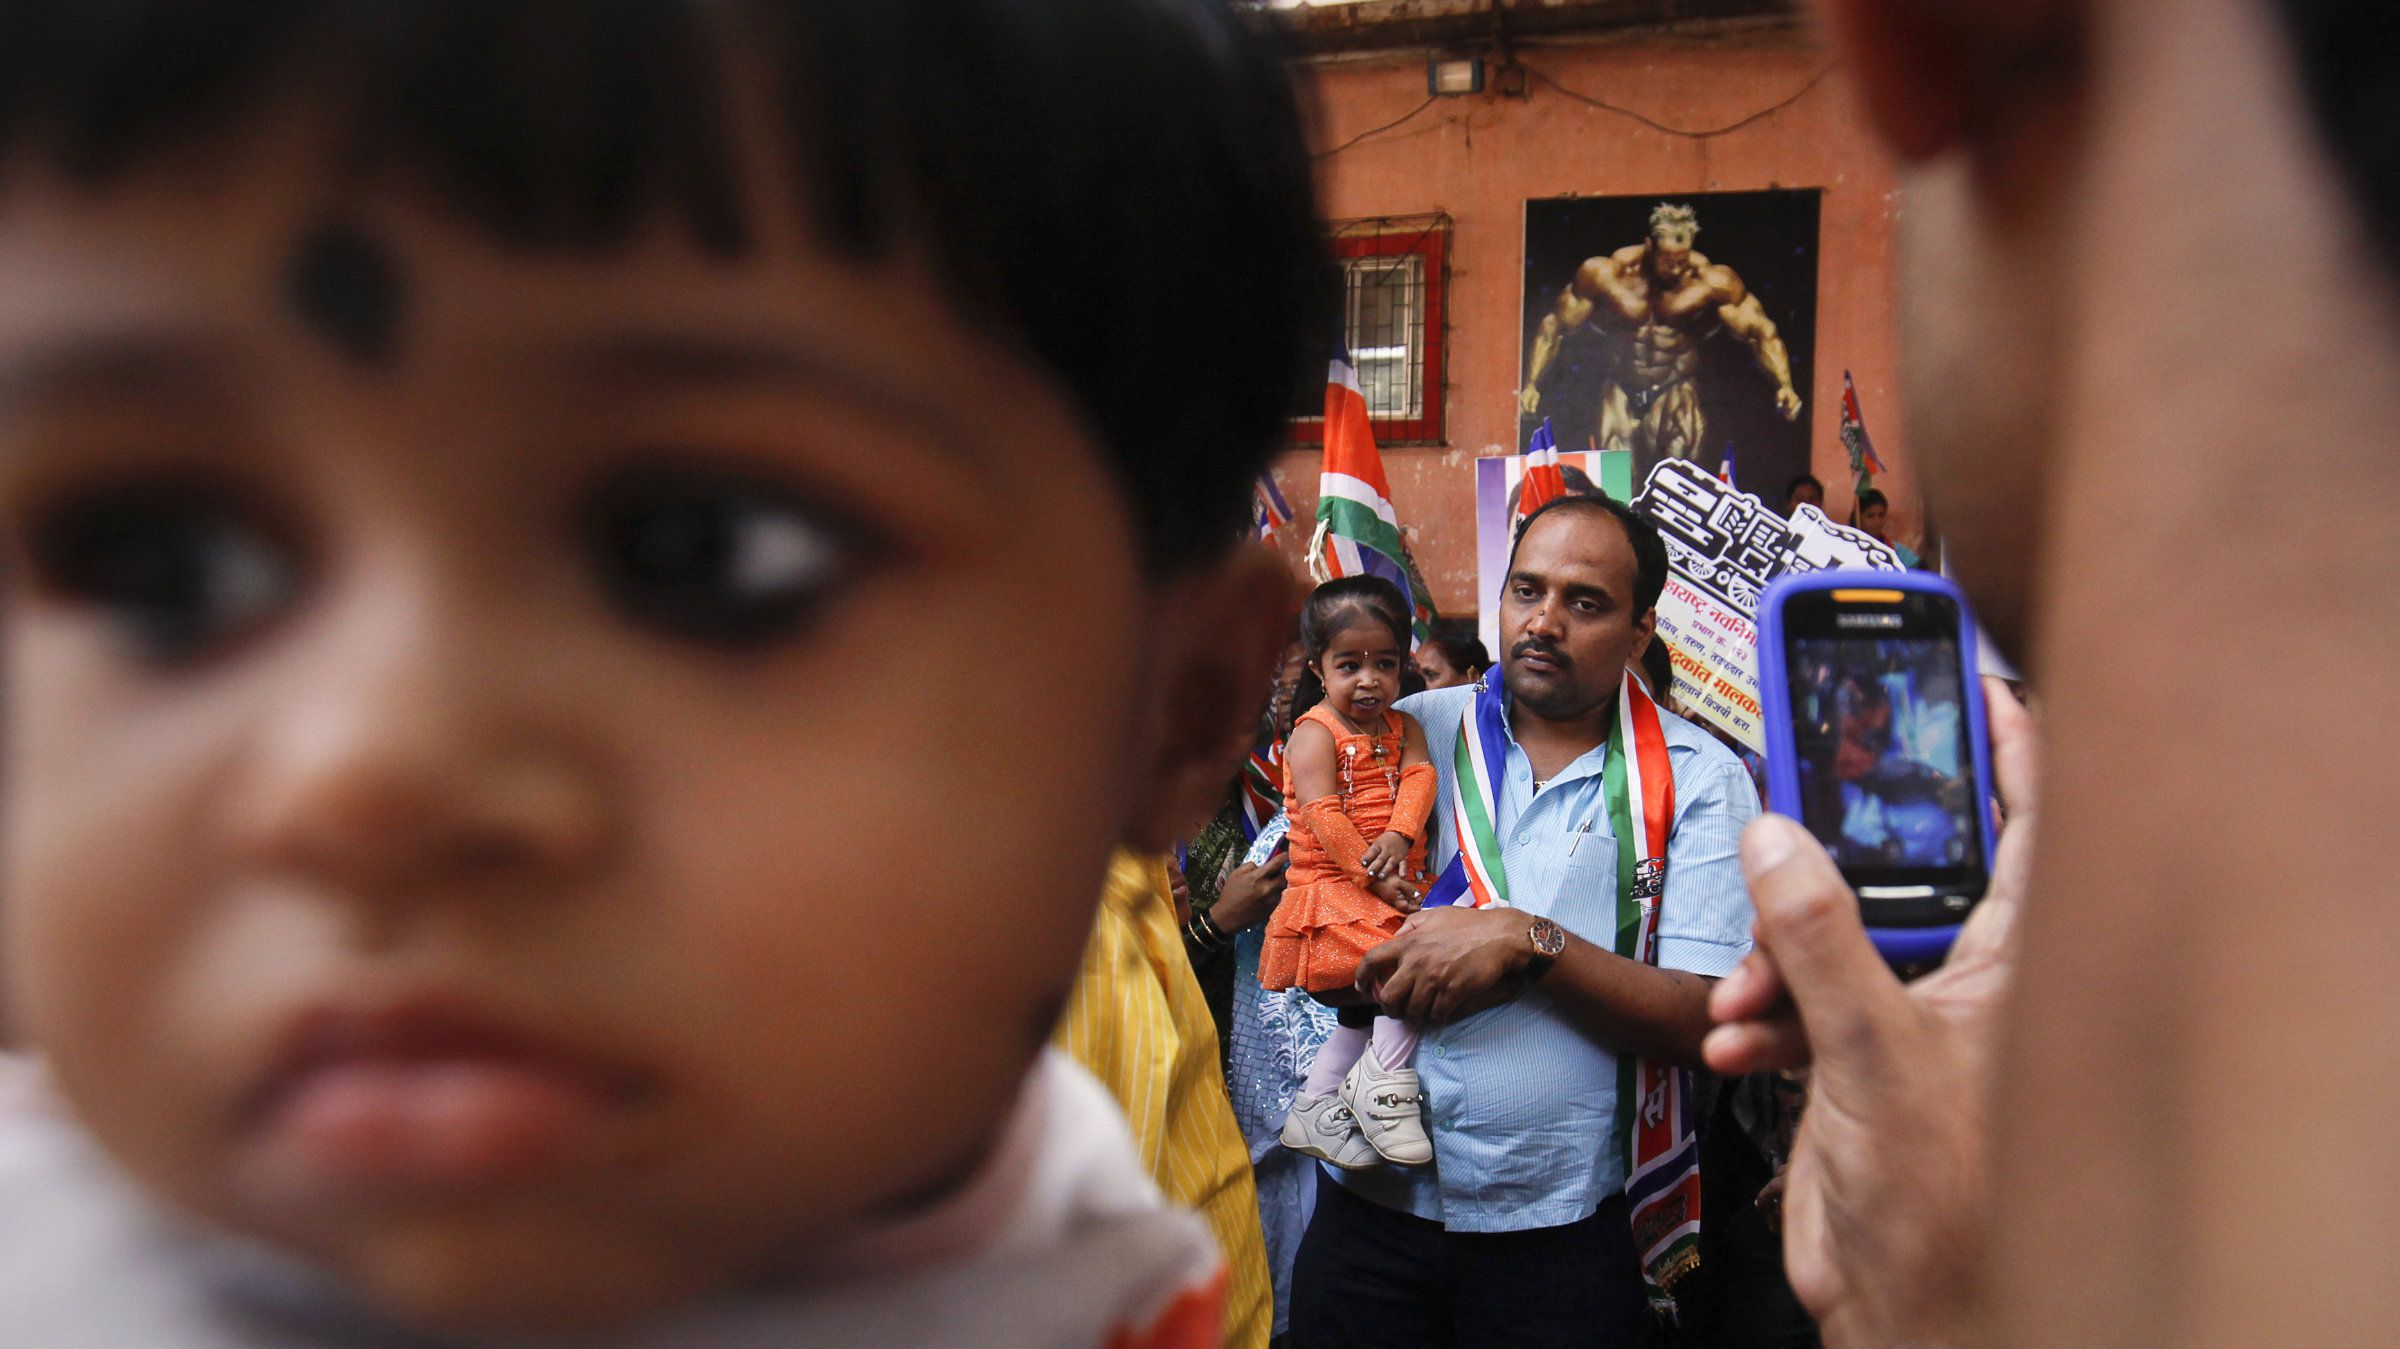 A man takes a picture of Jyoti Amge, the world's shortest living woman, as she is carried by a supporter of local political party Maharashtra Navnirman Sena (MNS) as she campaigns for the upcoming municipal elections in Mumbai December 7, 2012. Amge has been certified by the Guinness World Records as the shortest woman in the world with an average measurement of 24.39 inches (61.95 cm). REUTERS/Danish Siddiqui (INDIA - Tags: SOCIETY POLITICS ELECTIONS)